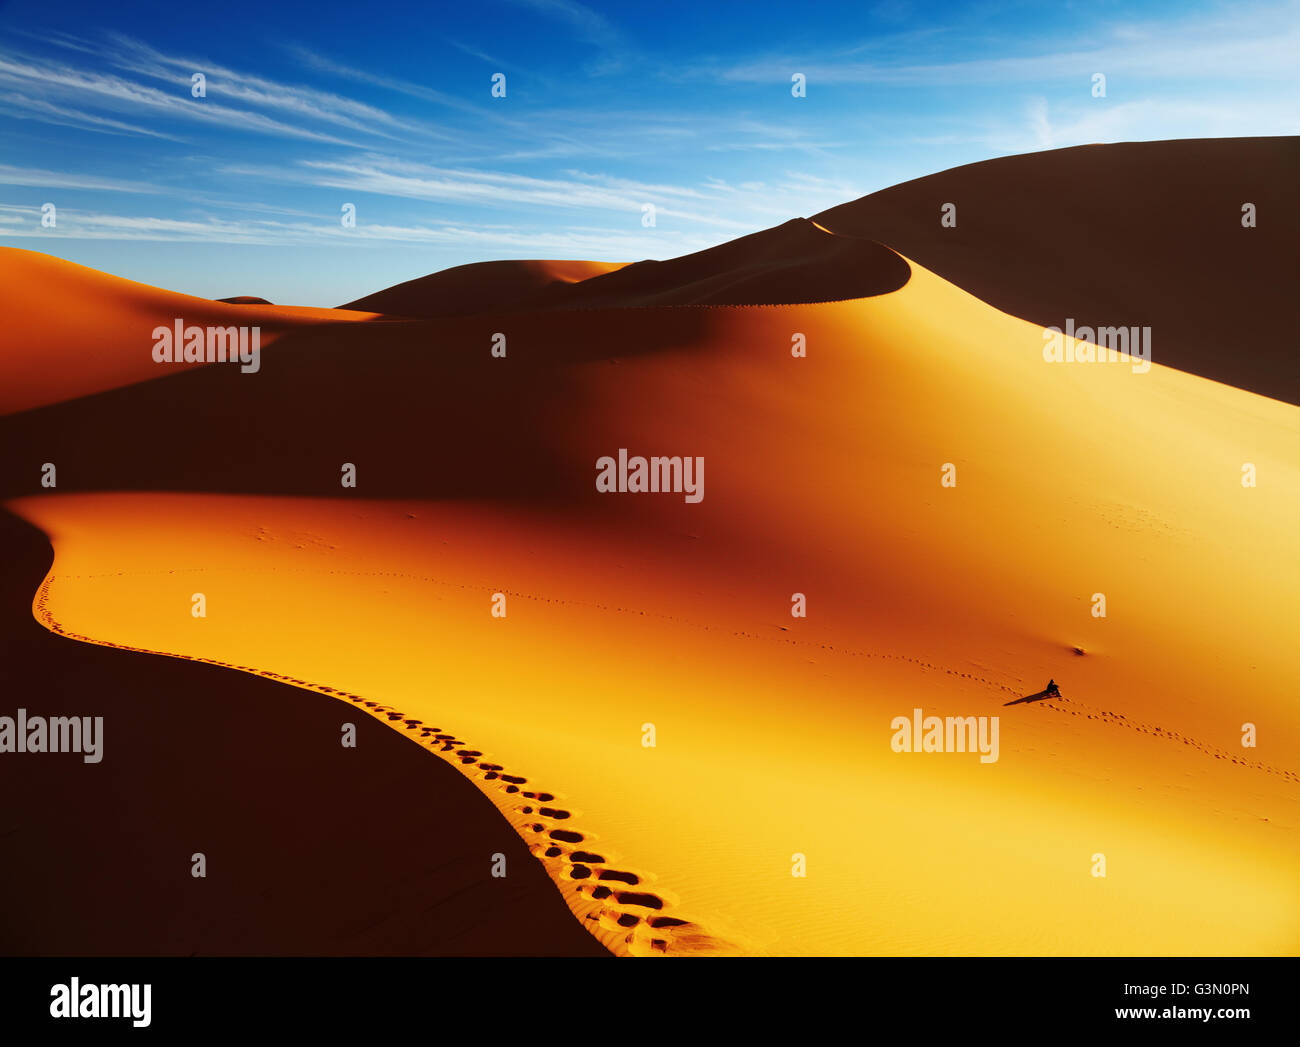 Sand dune with footprints at sunrise, Sahara Desert, Algeria - Stock Image